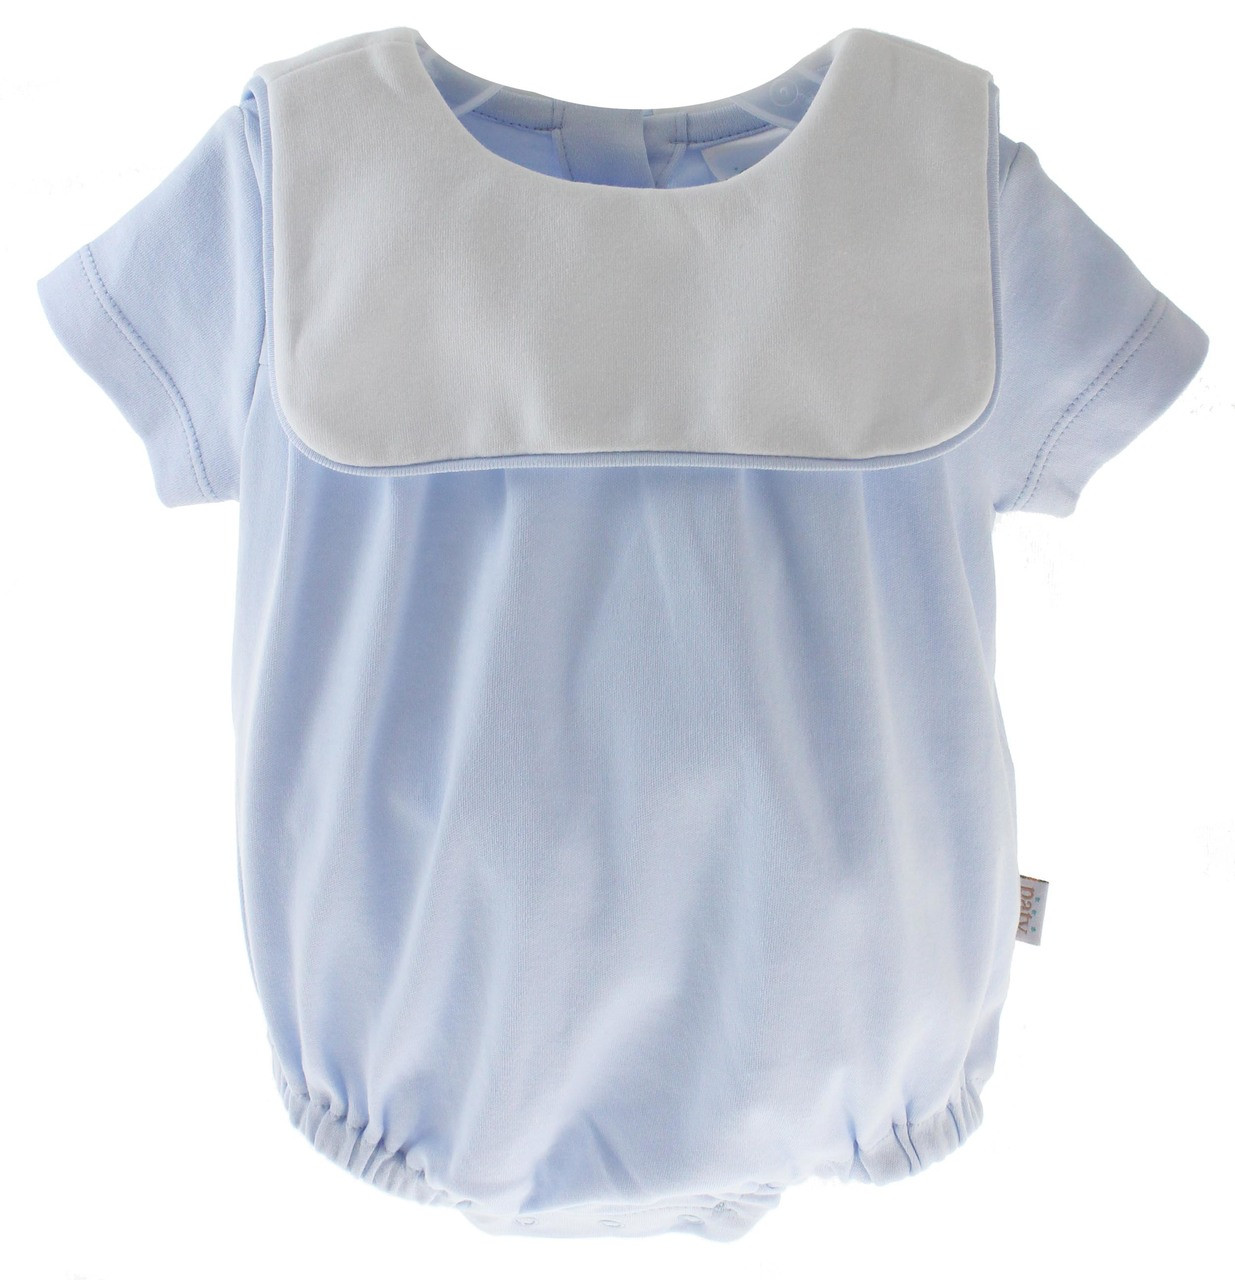 4d8cd563d8056 ... Baby Boys Blue Cotton Bubble Outfit White Bib Collar - Paty Inc. Loading  zoom